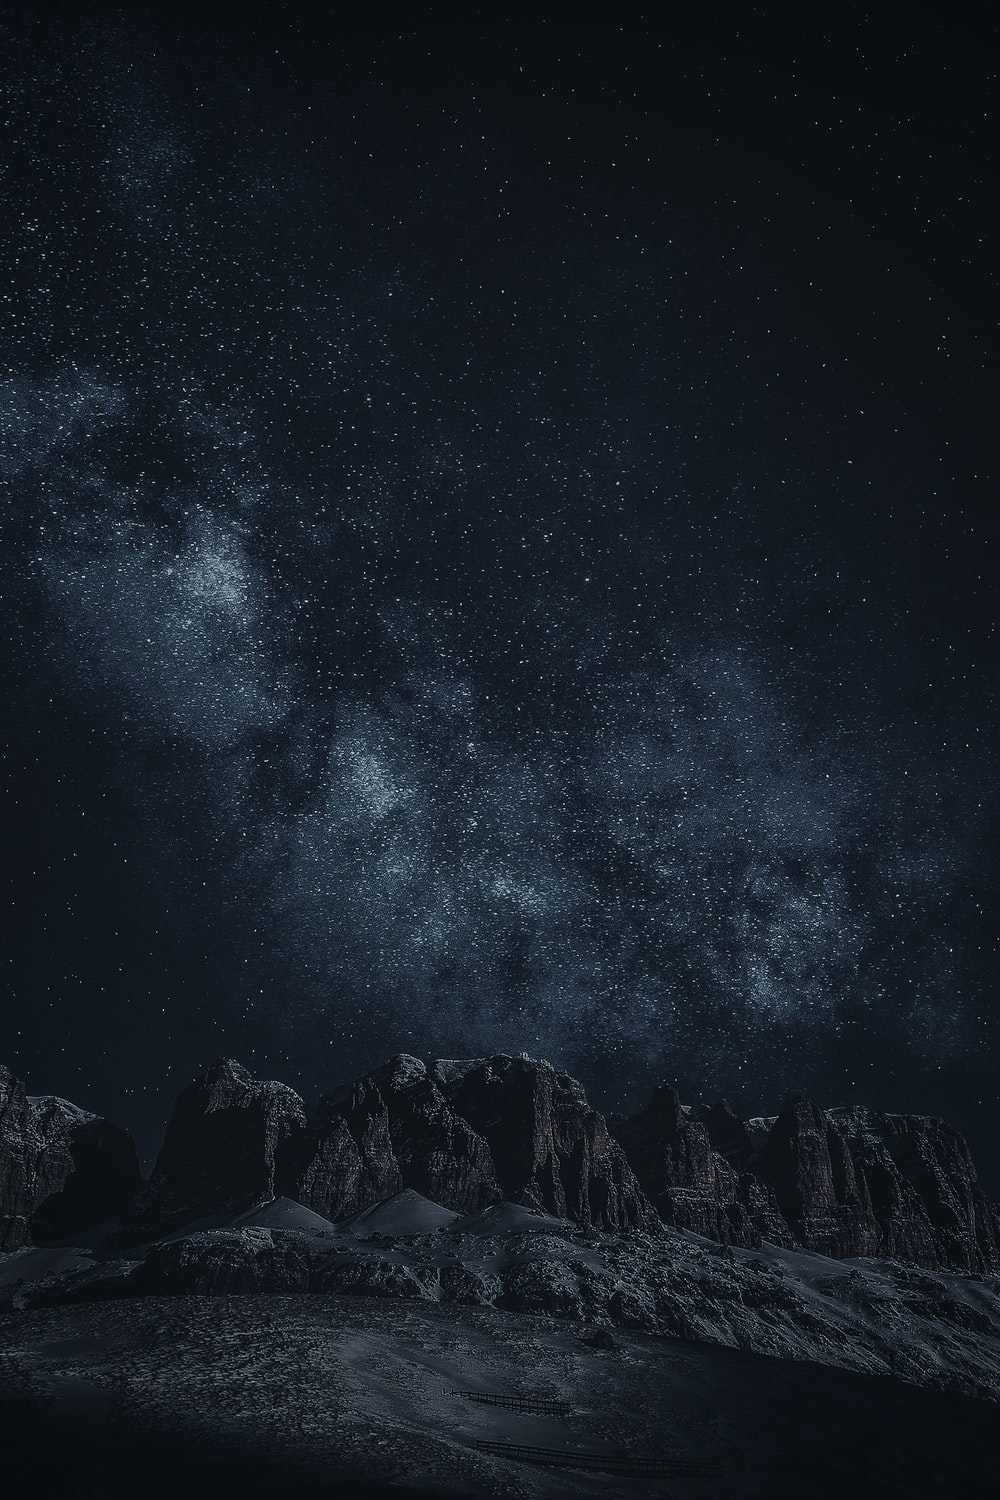 black rock formation during night time